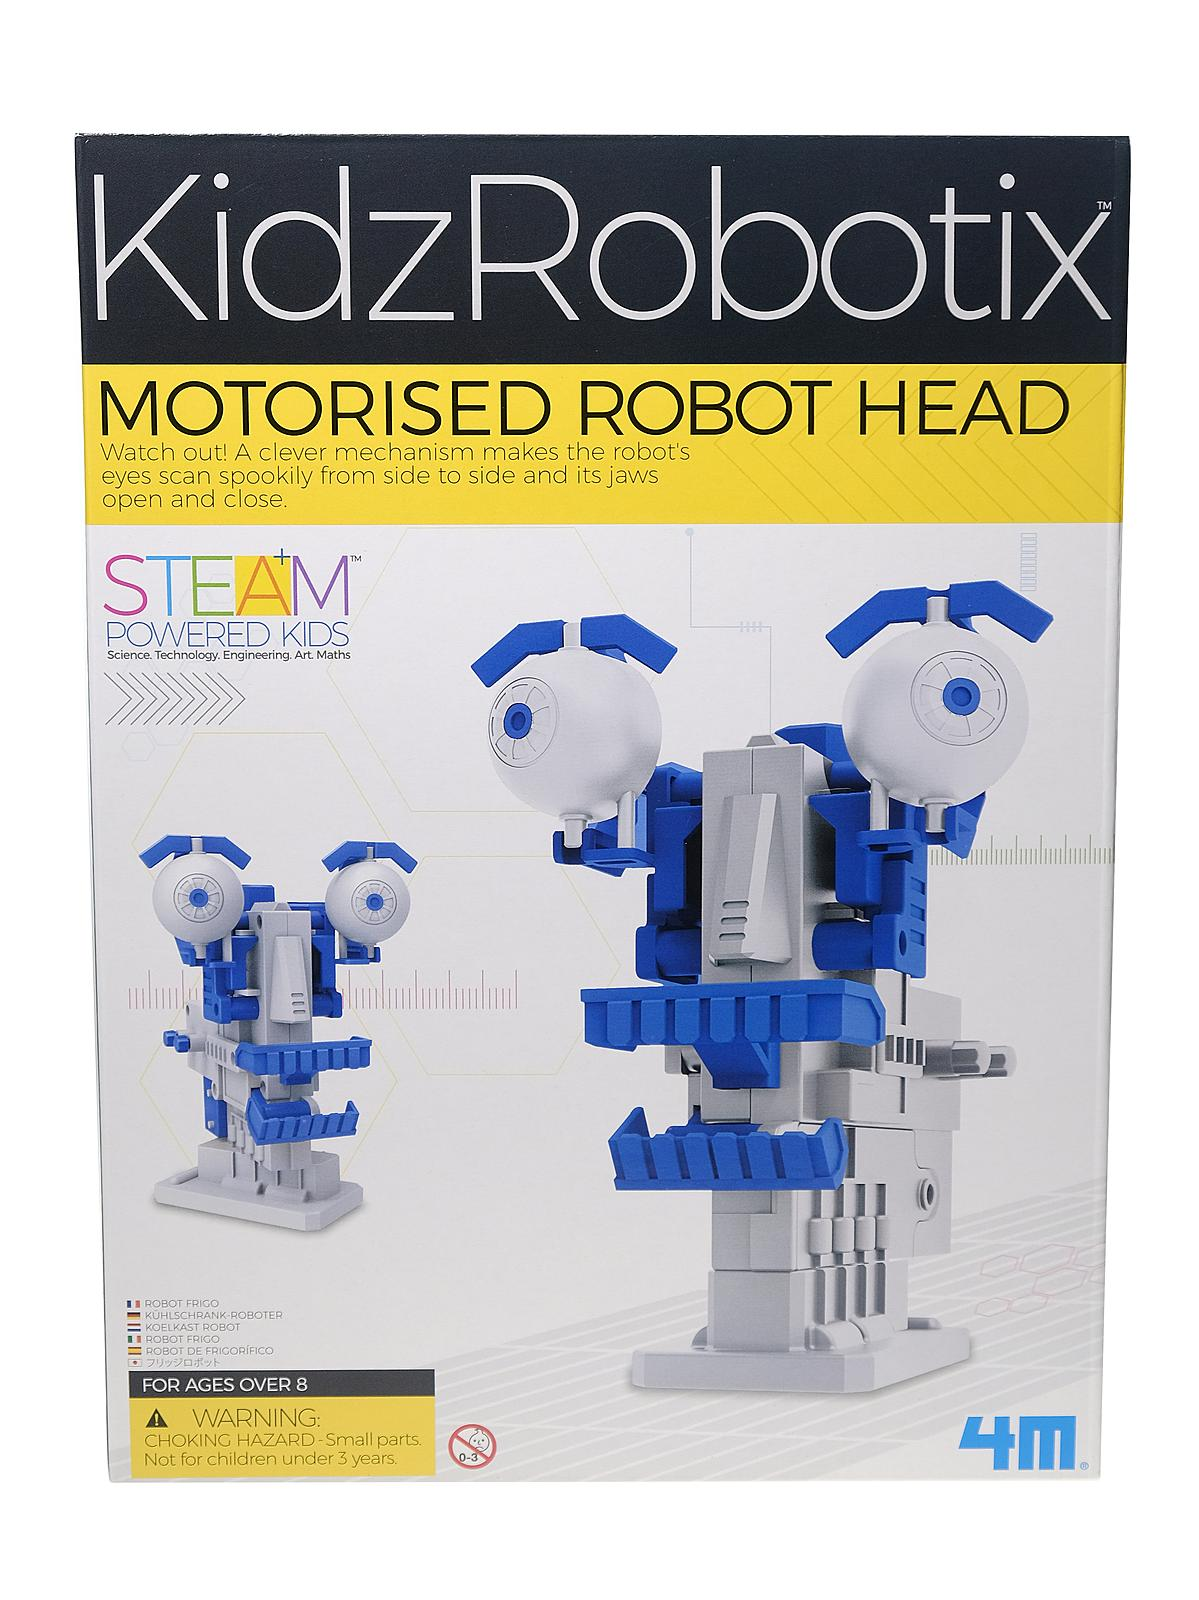 KidzRobotix Motorised Robot Head